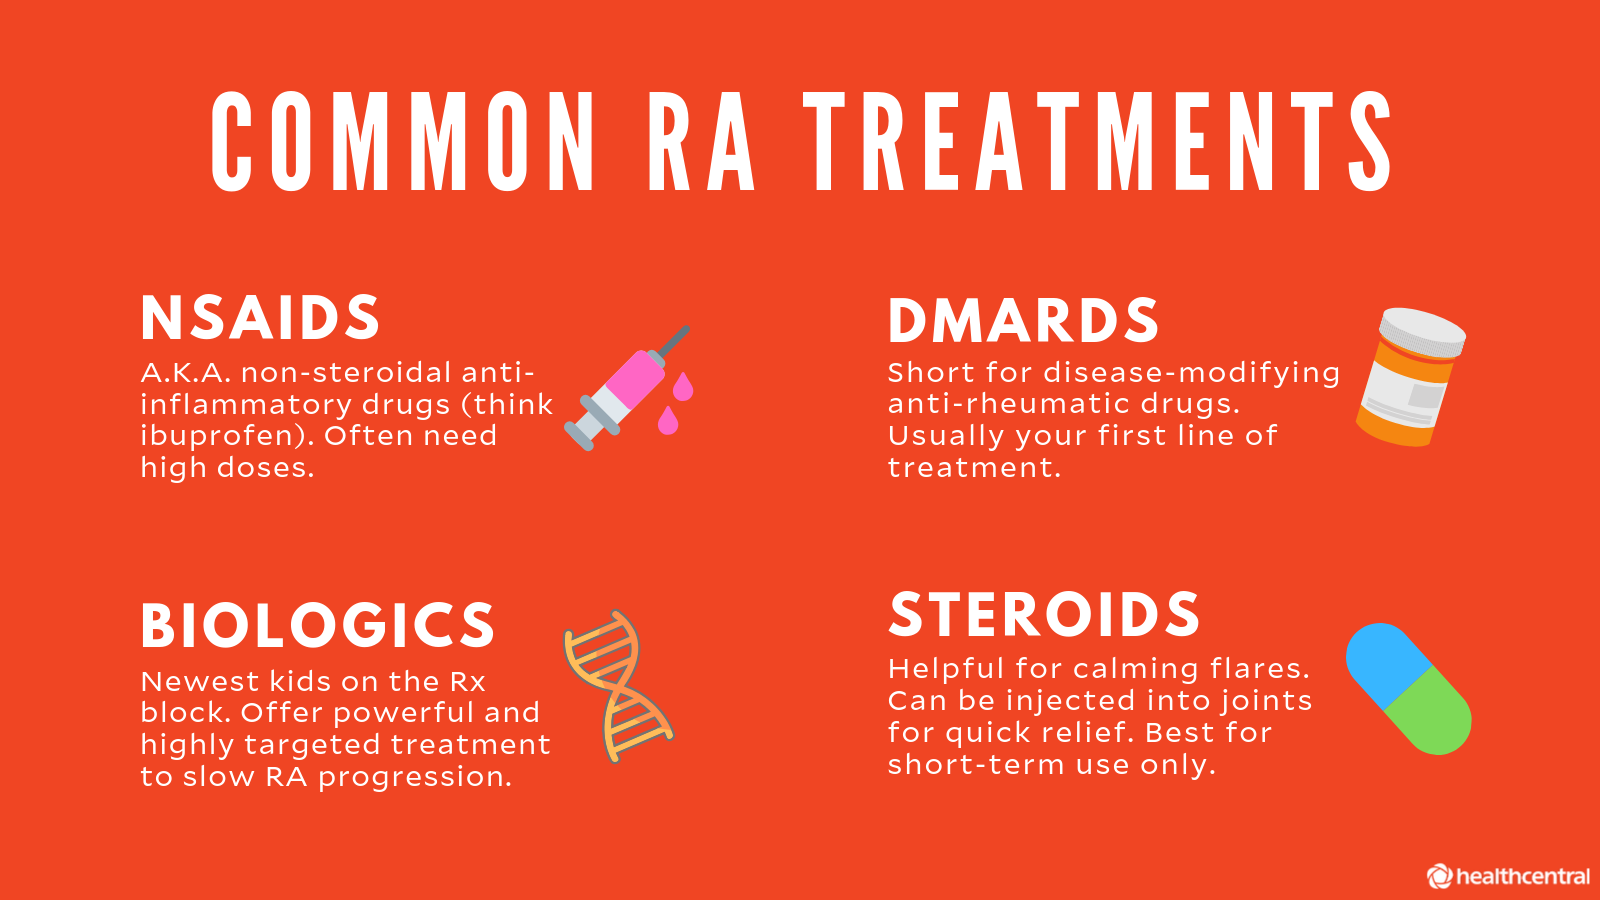 Rheumatoid Arthritis Symptoms Causes Treatments And More